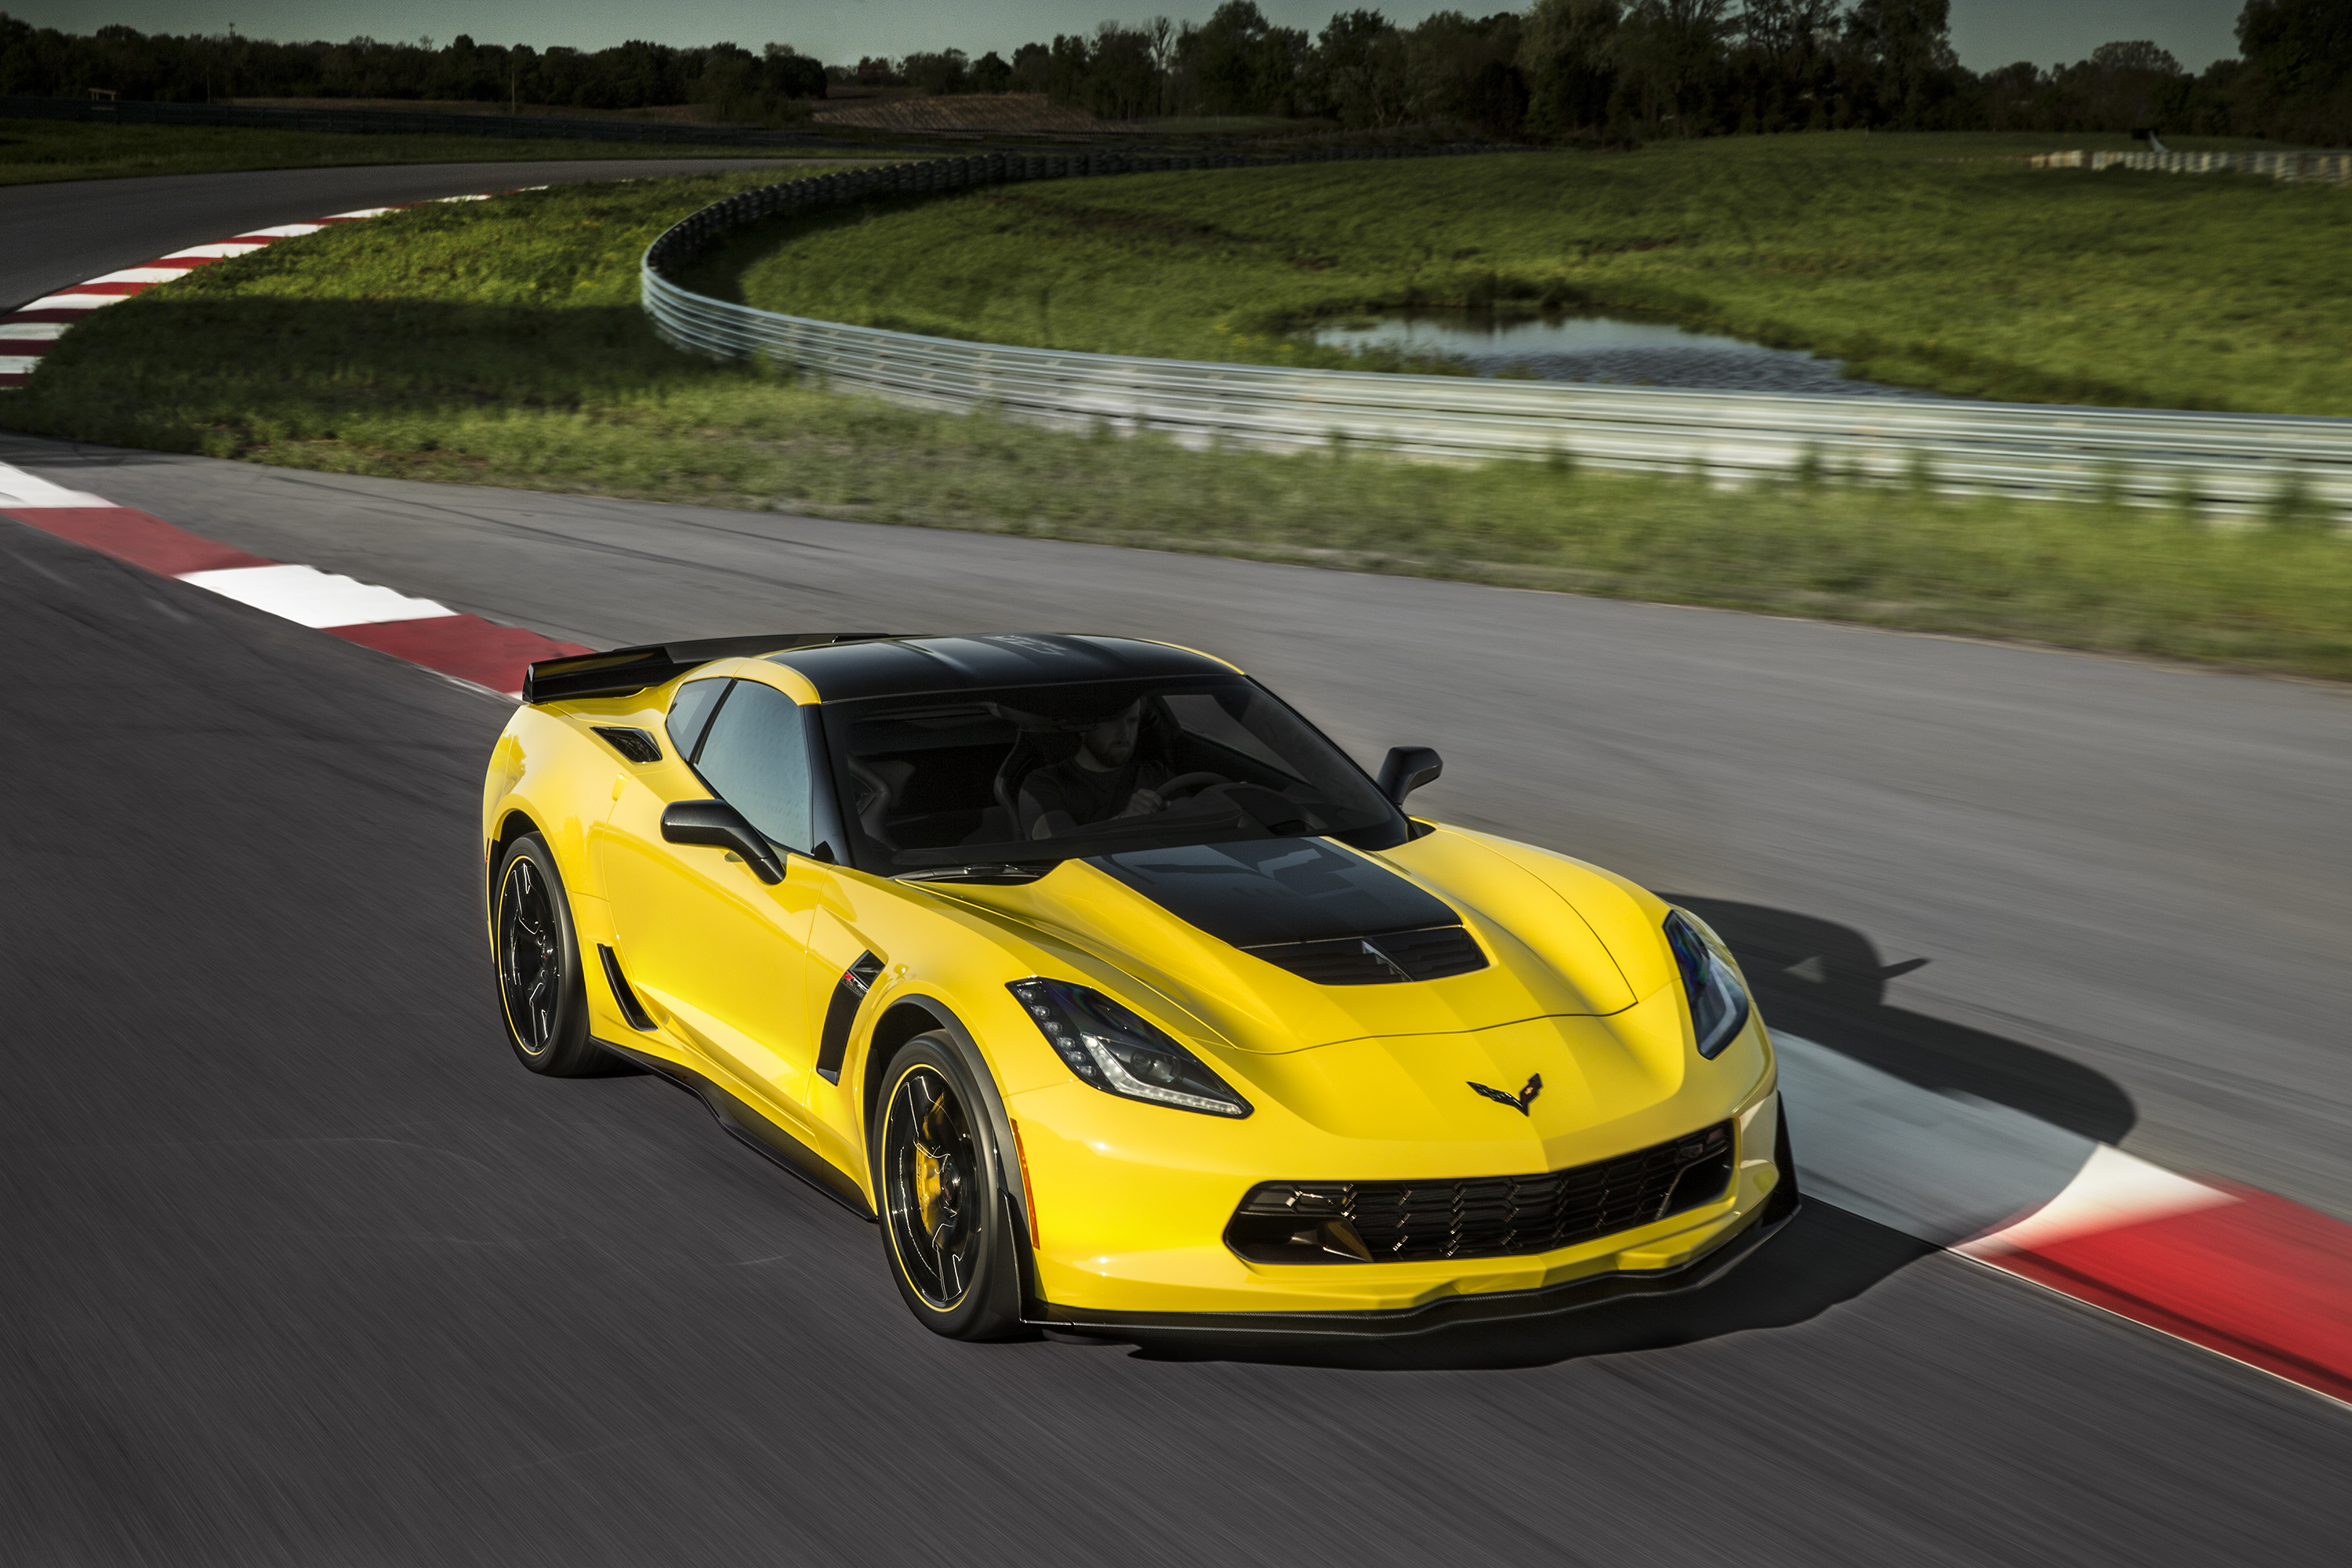 Corvette Z06 C7 R Edition Pays Tribute To Racing Legacy